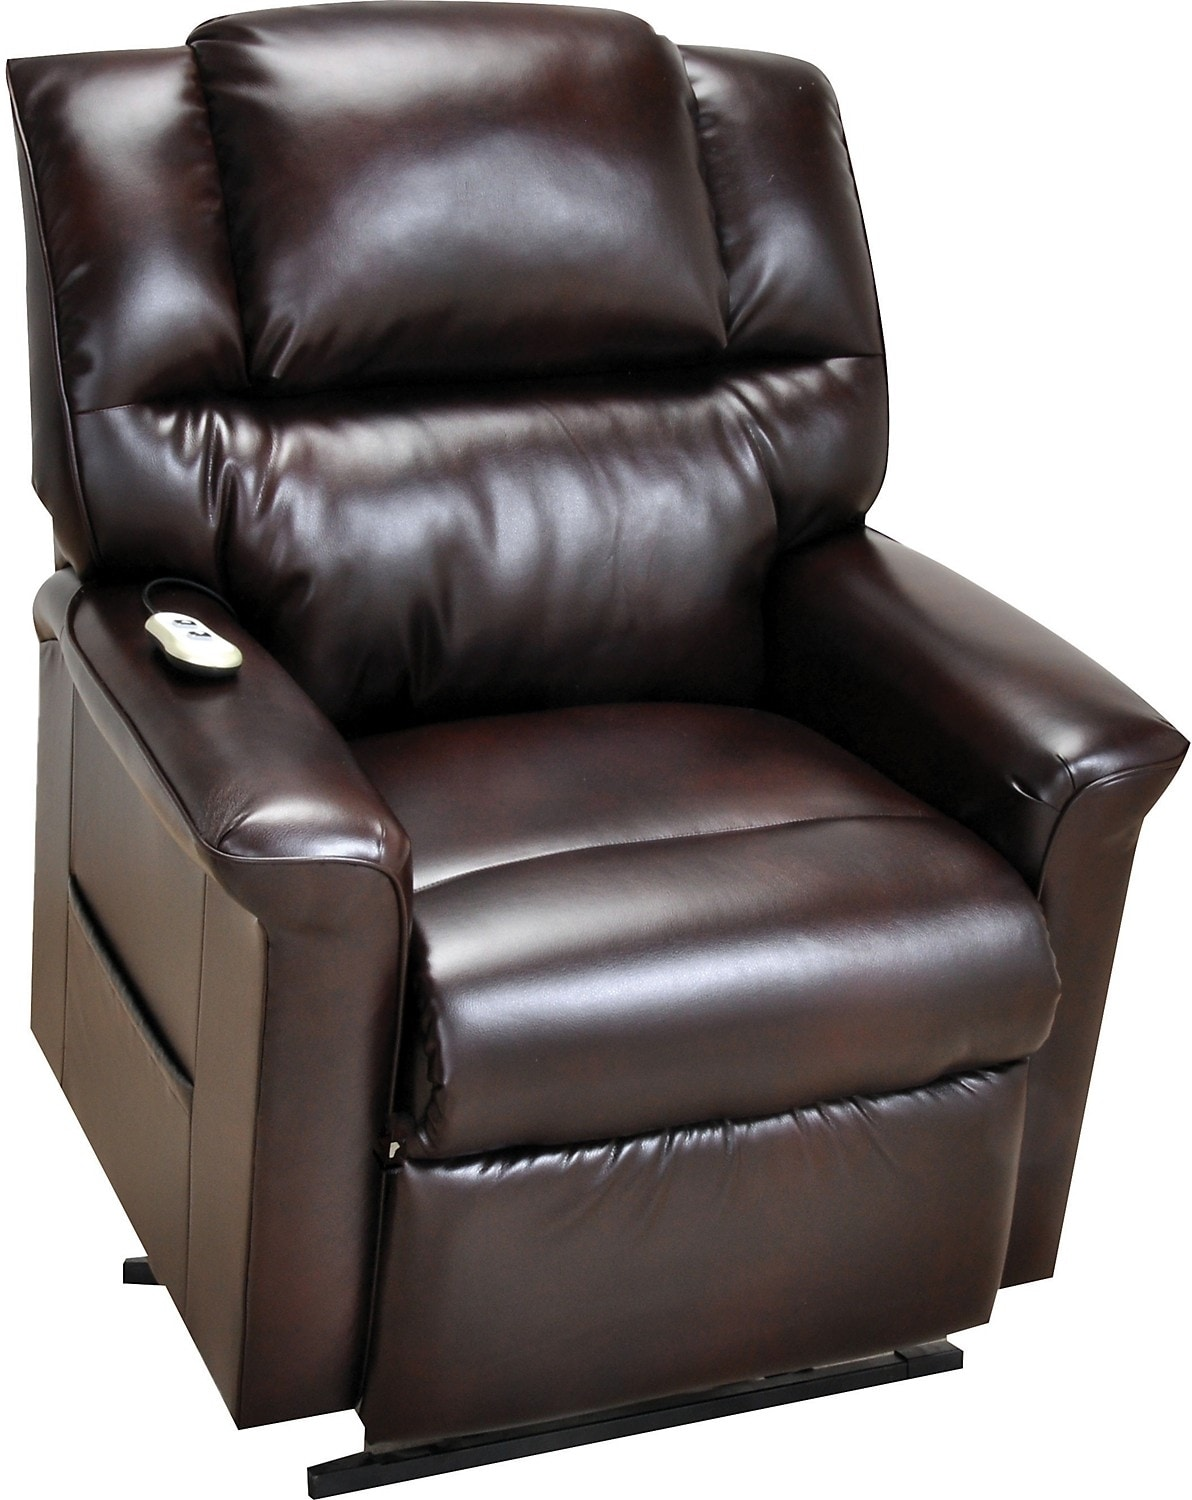 Bonded Leather 3 Position Power Lift Recliner Brown